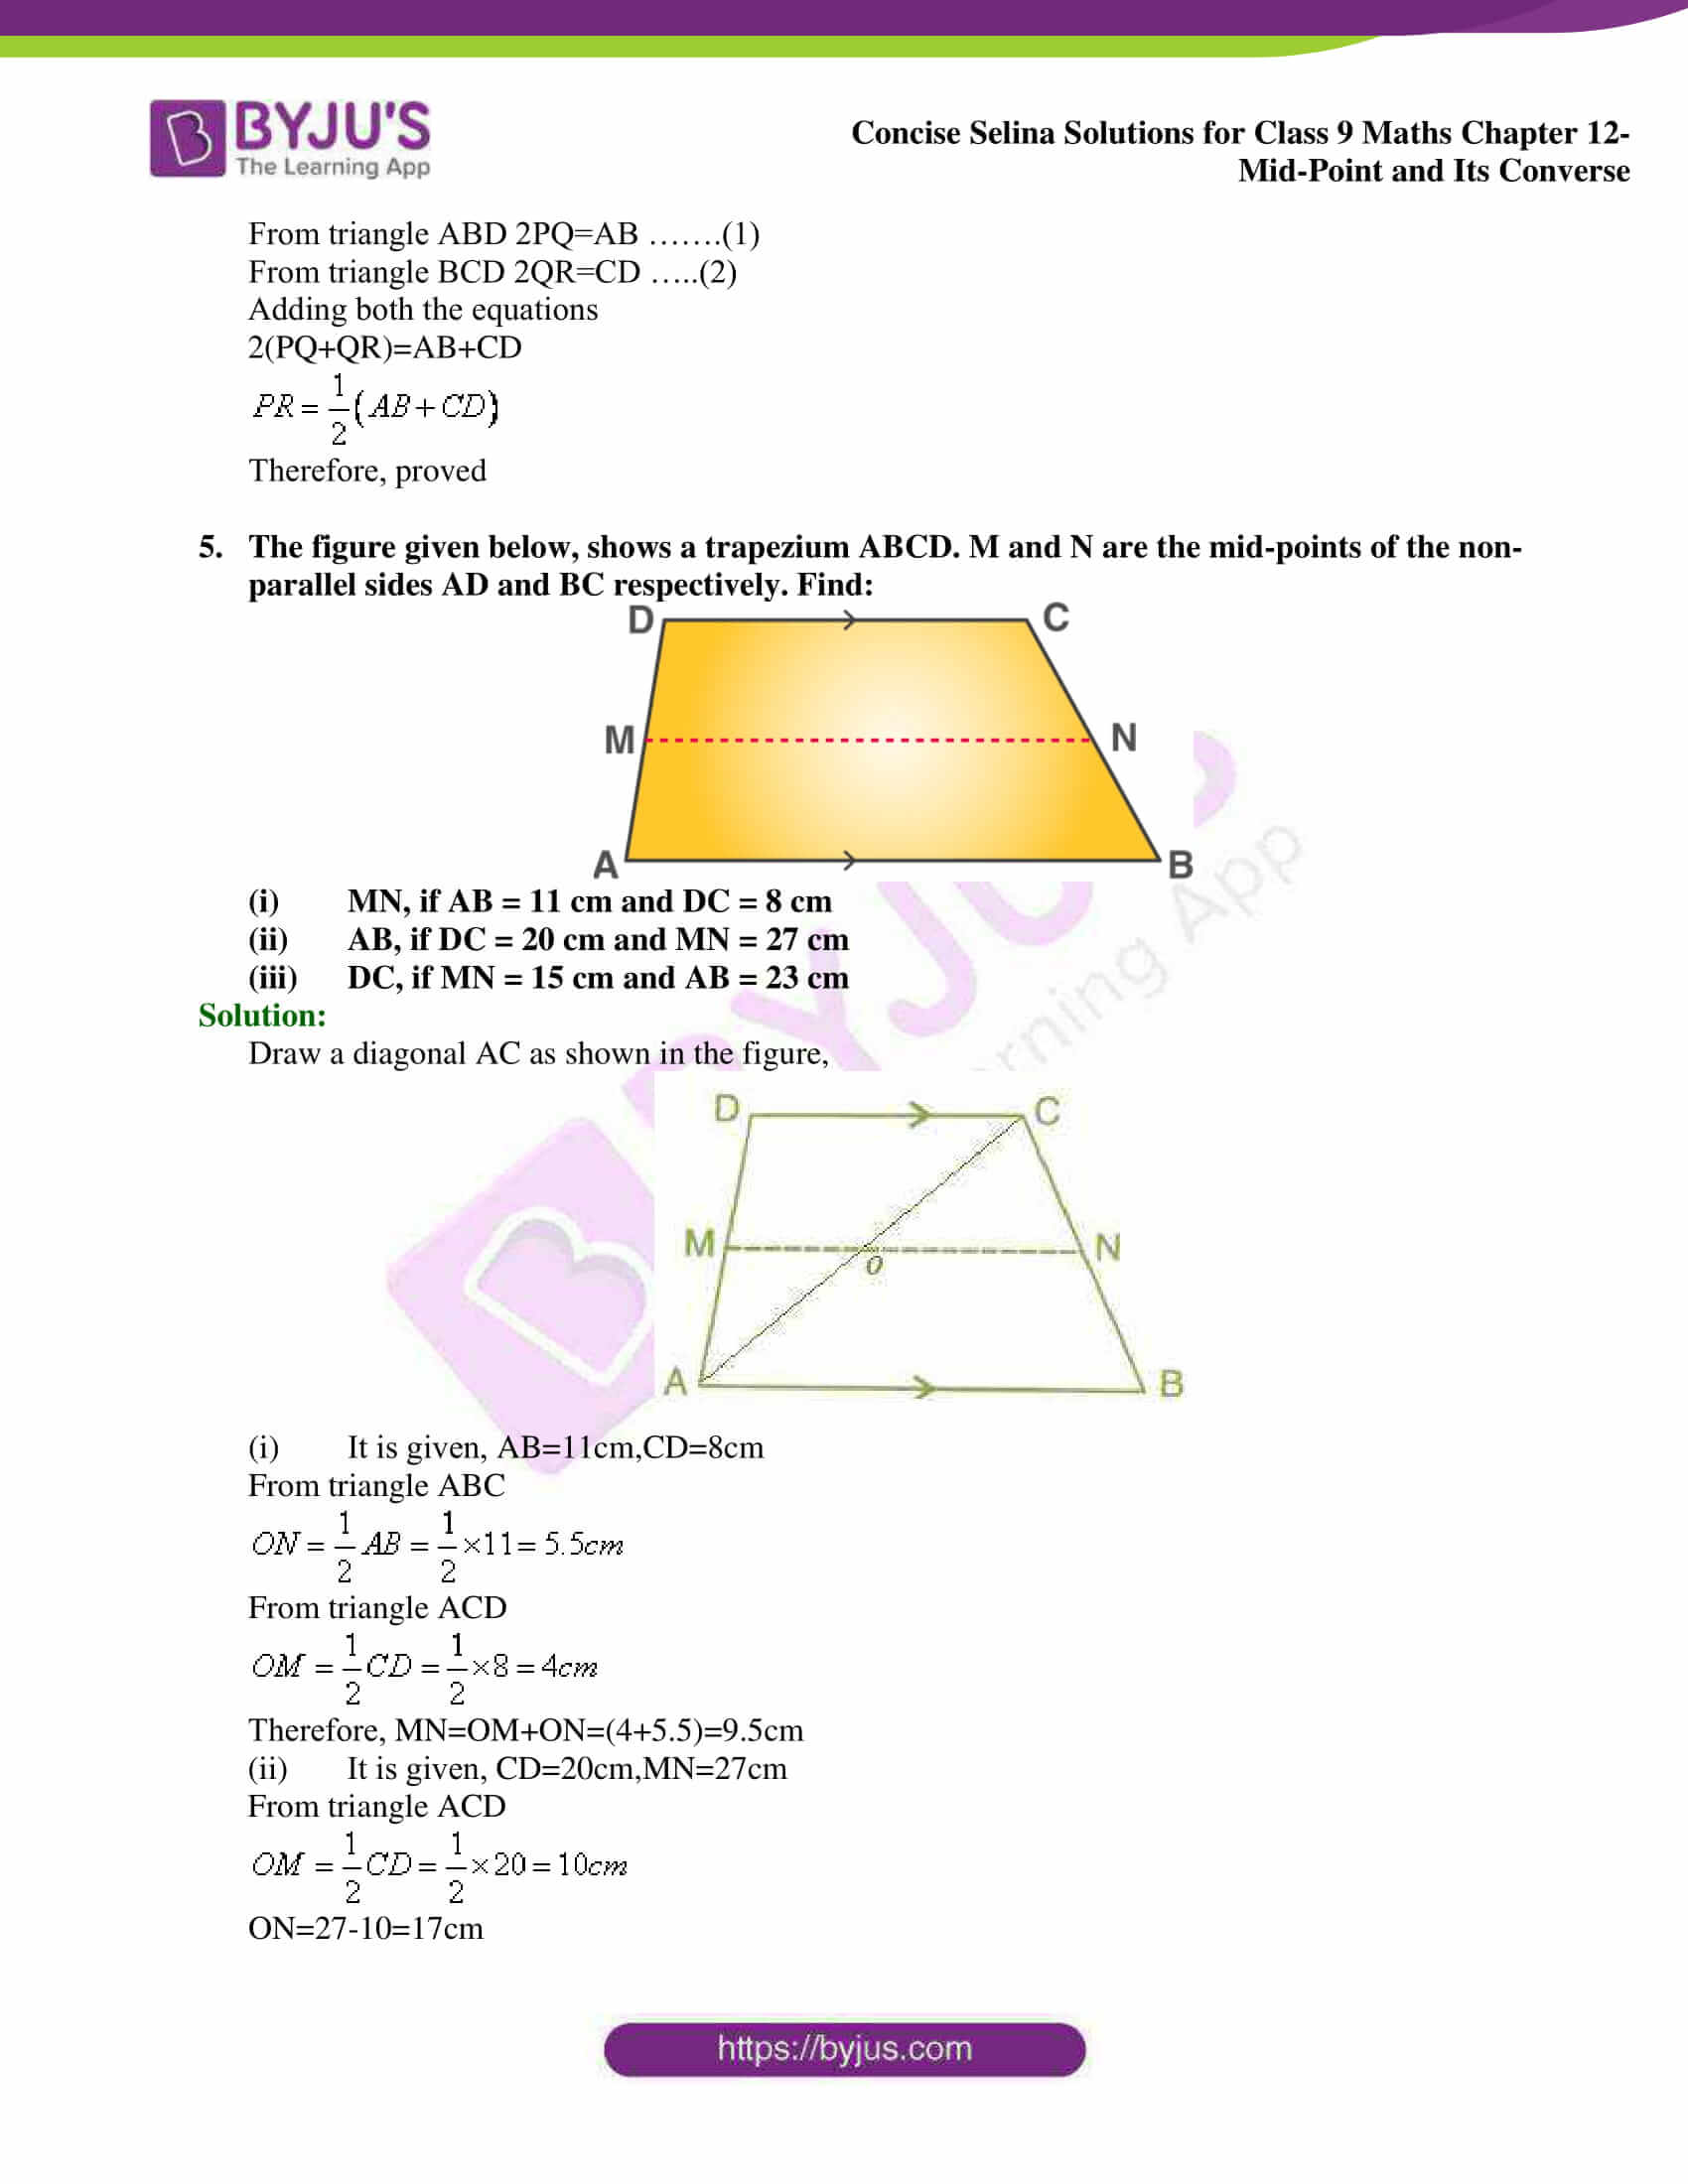 selina Solutions for Class 9 Maths Chapter 12 03